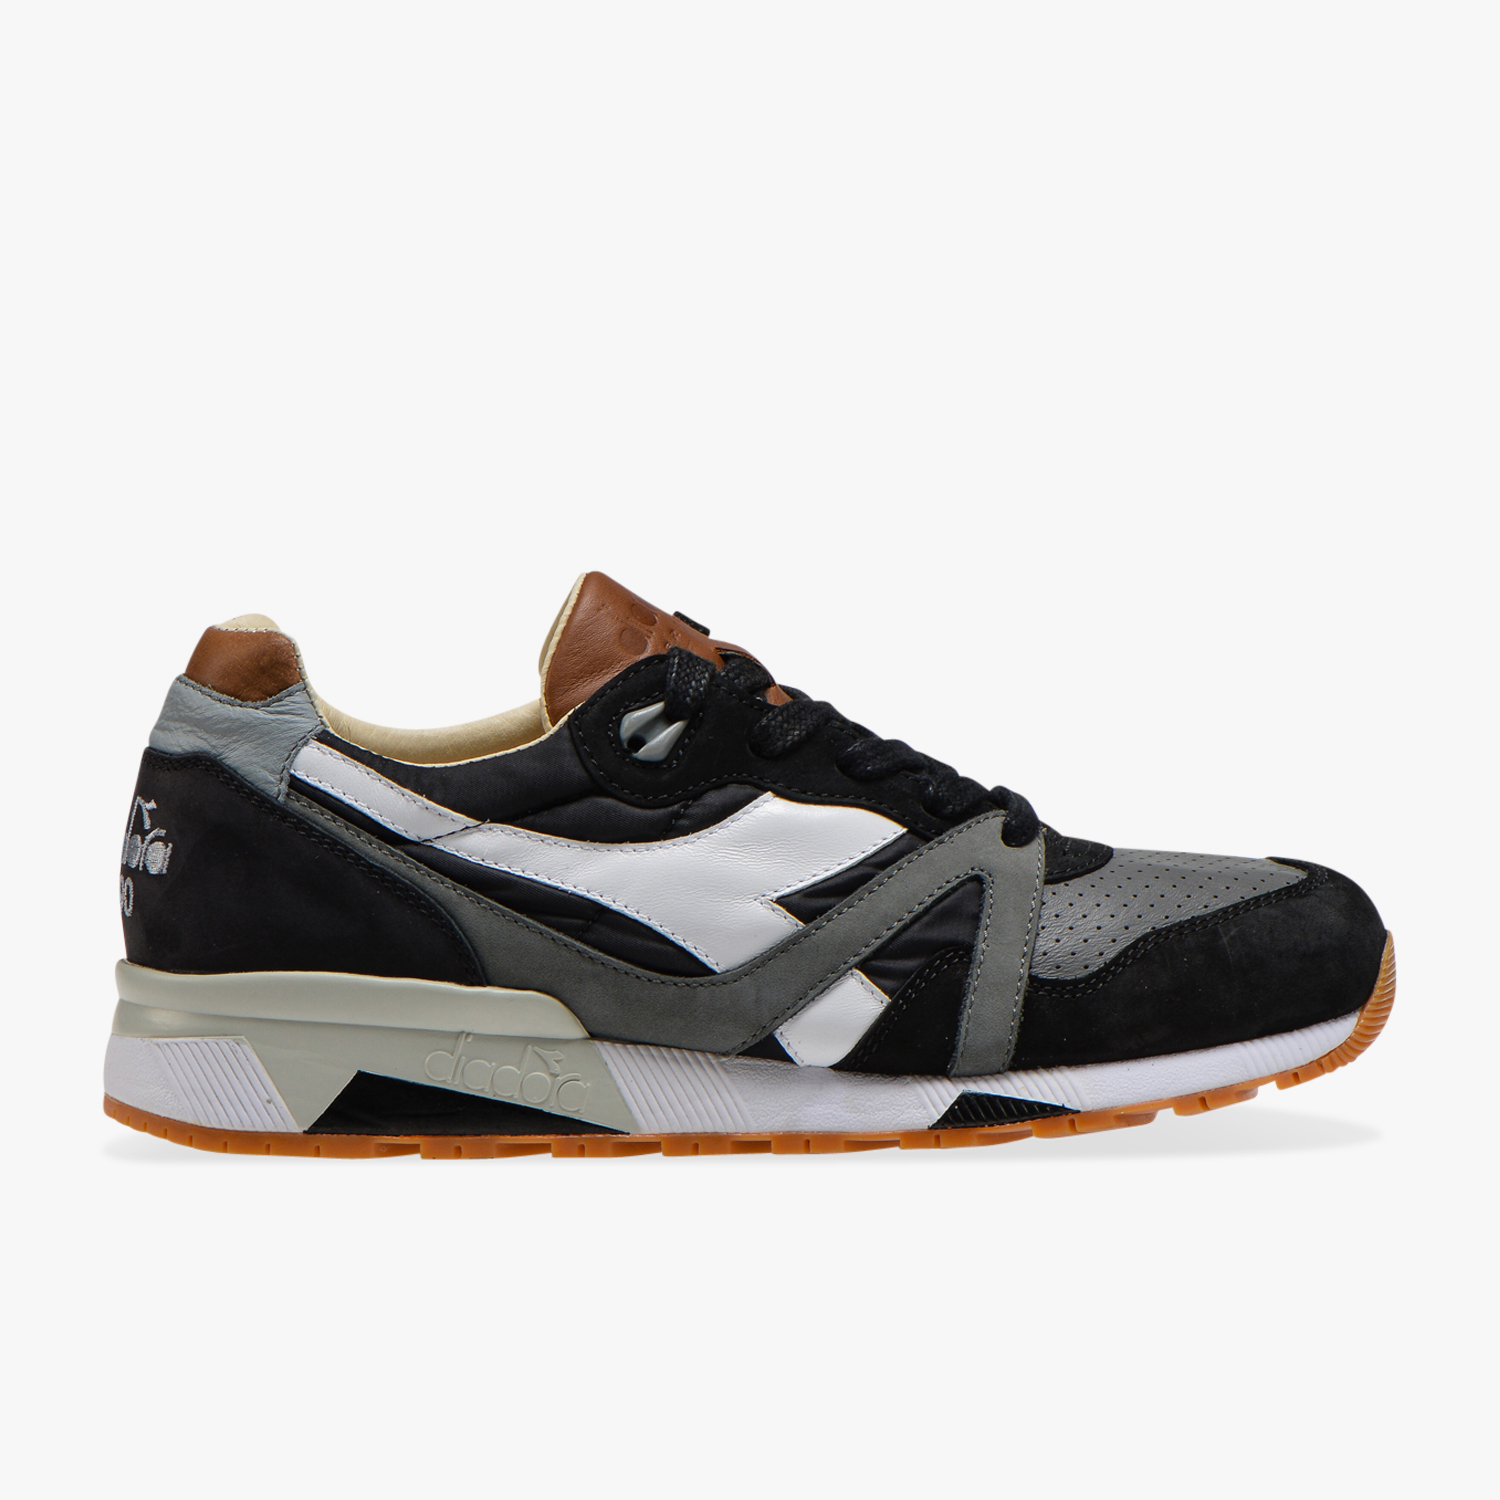 Diadora N.9000 | Best Shoes eva in 2019 | Diadora sneakers